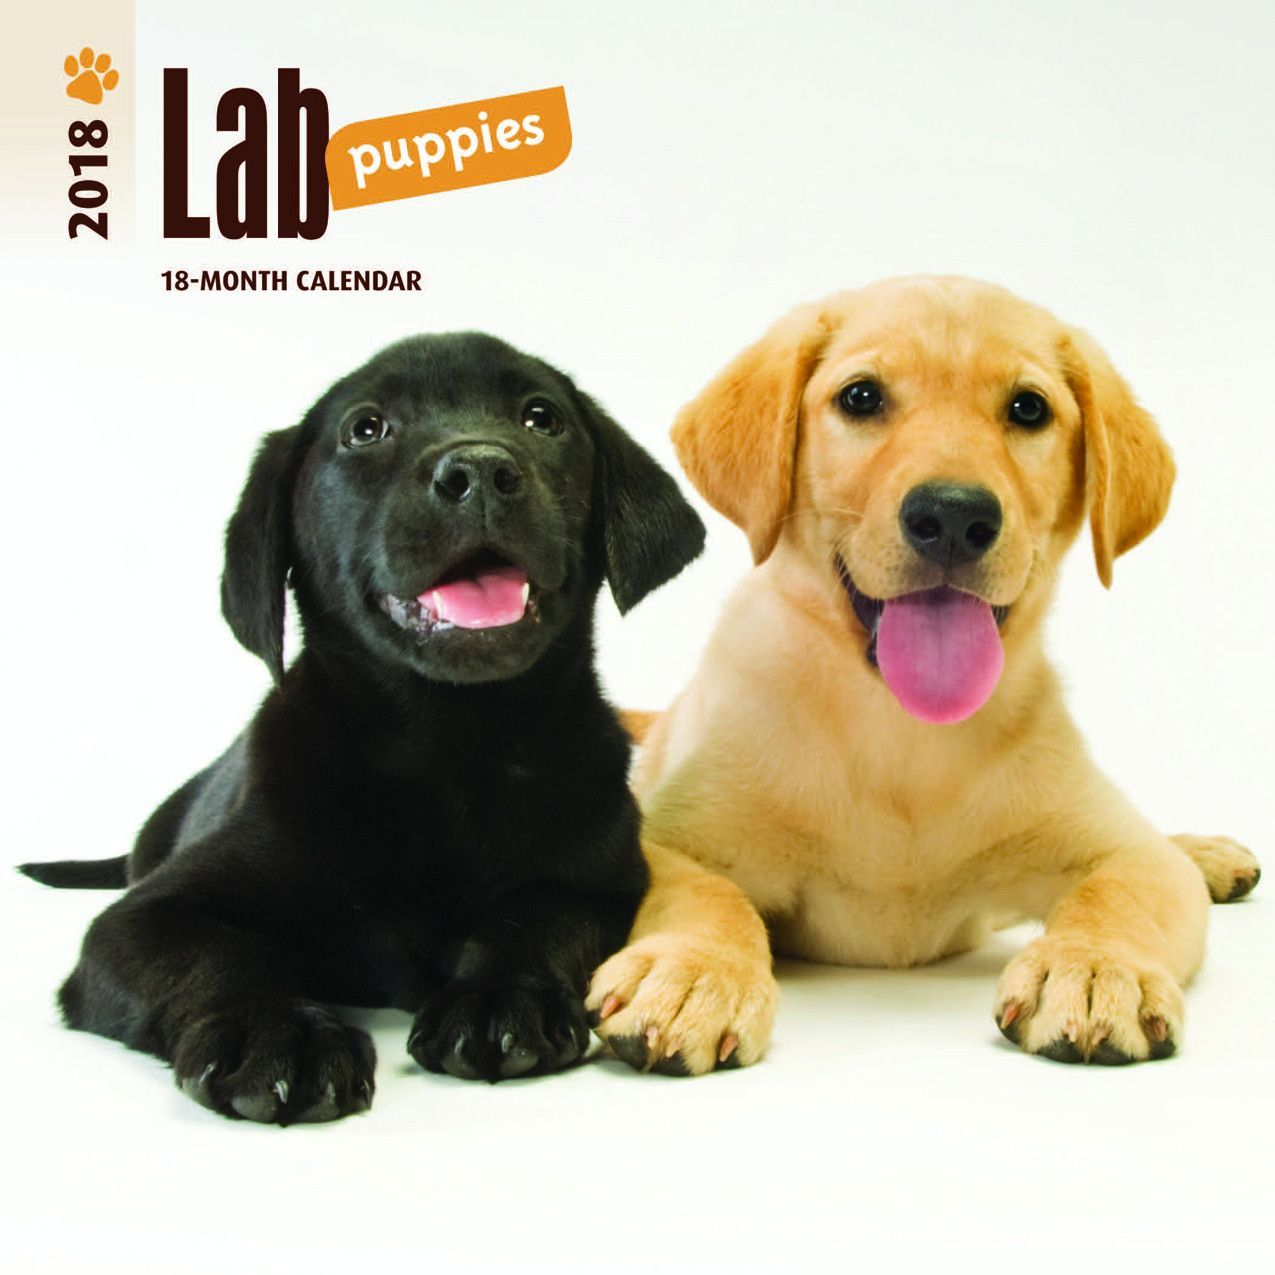 Labrador Retriever Puppies 2018 Mini Wall Calendar